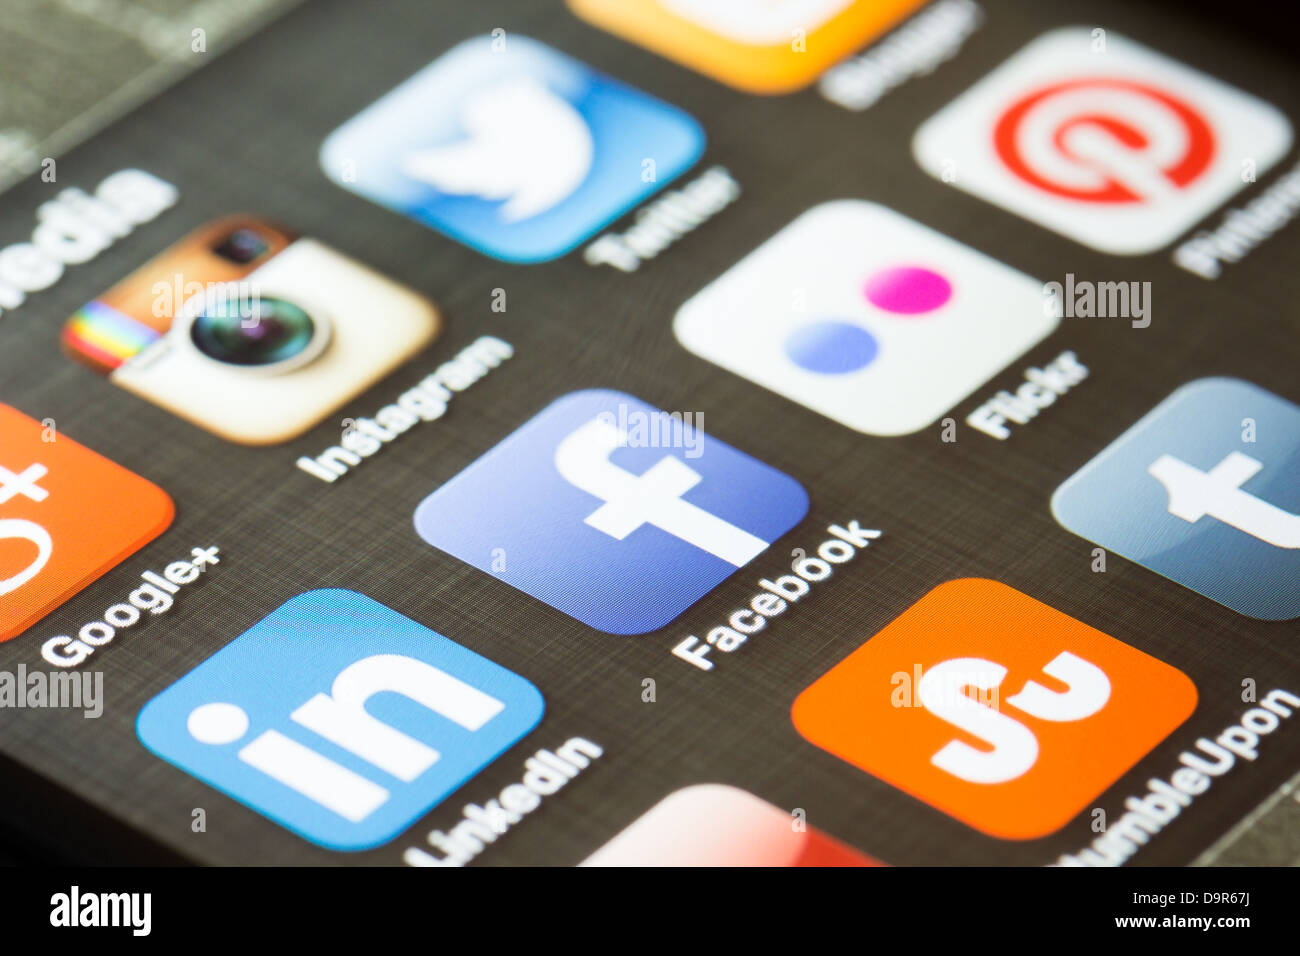 Social media app icons on an Apple iPhone 5 - Stock Image